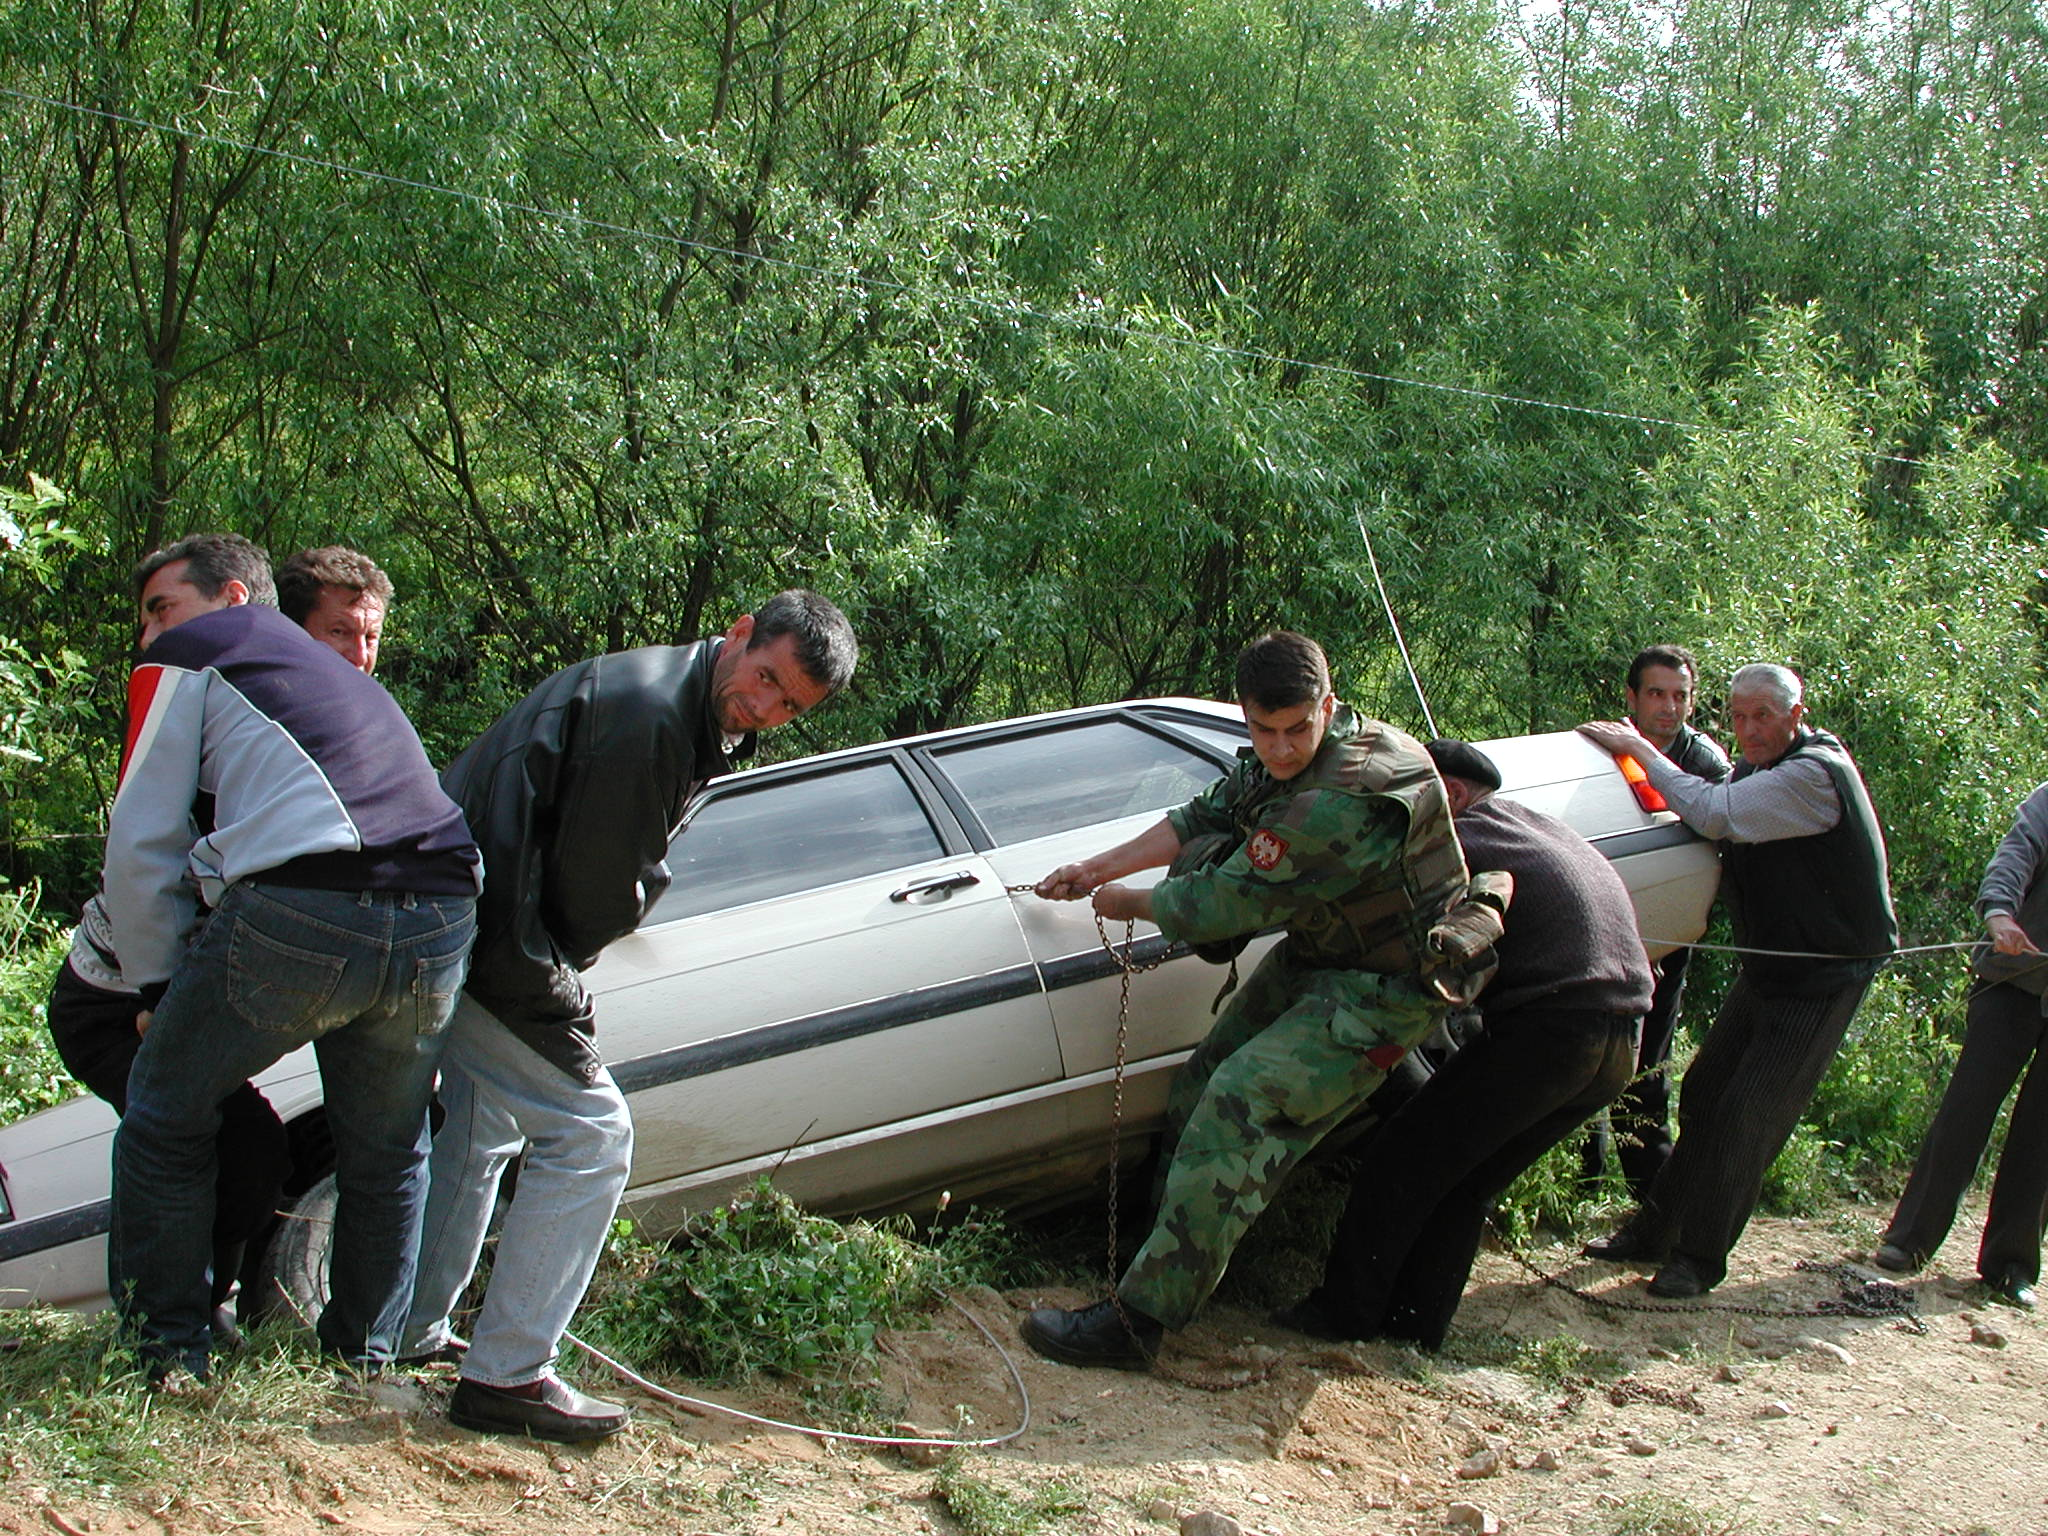 Help from Soldiers. Together with Yugoslav soldiers, local Albanians helped a Norwegian journalist to get the car up from a hillside outside the village of Muhovac.